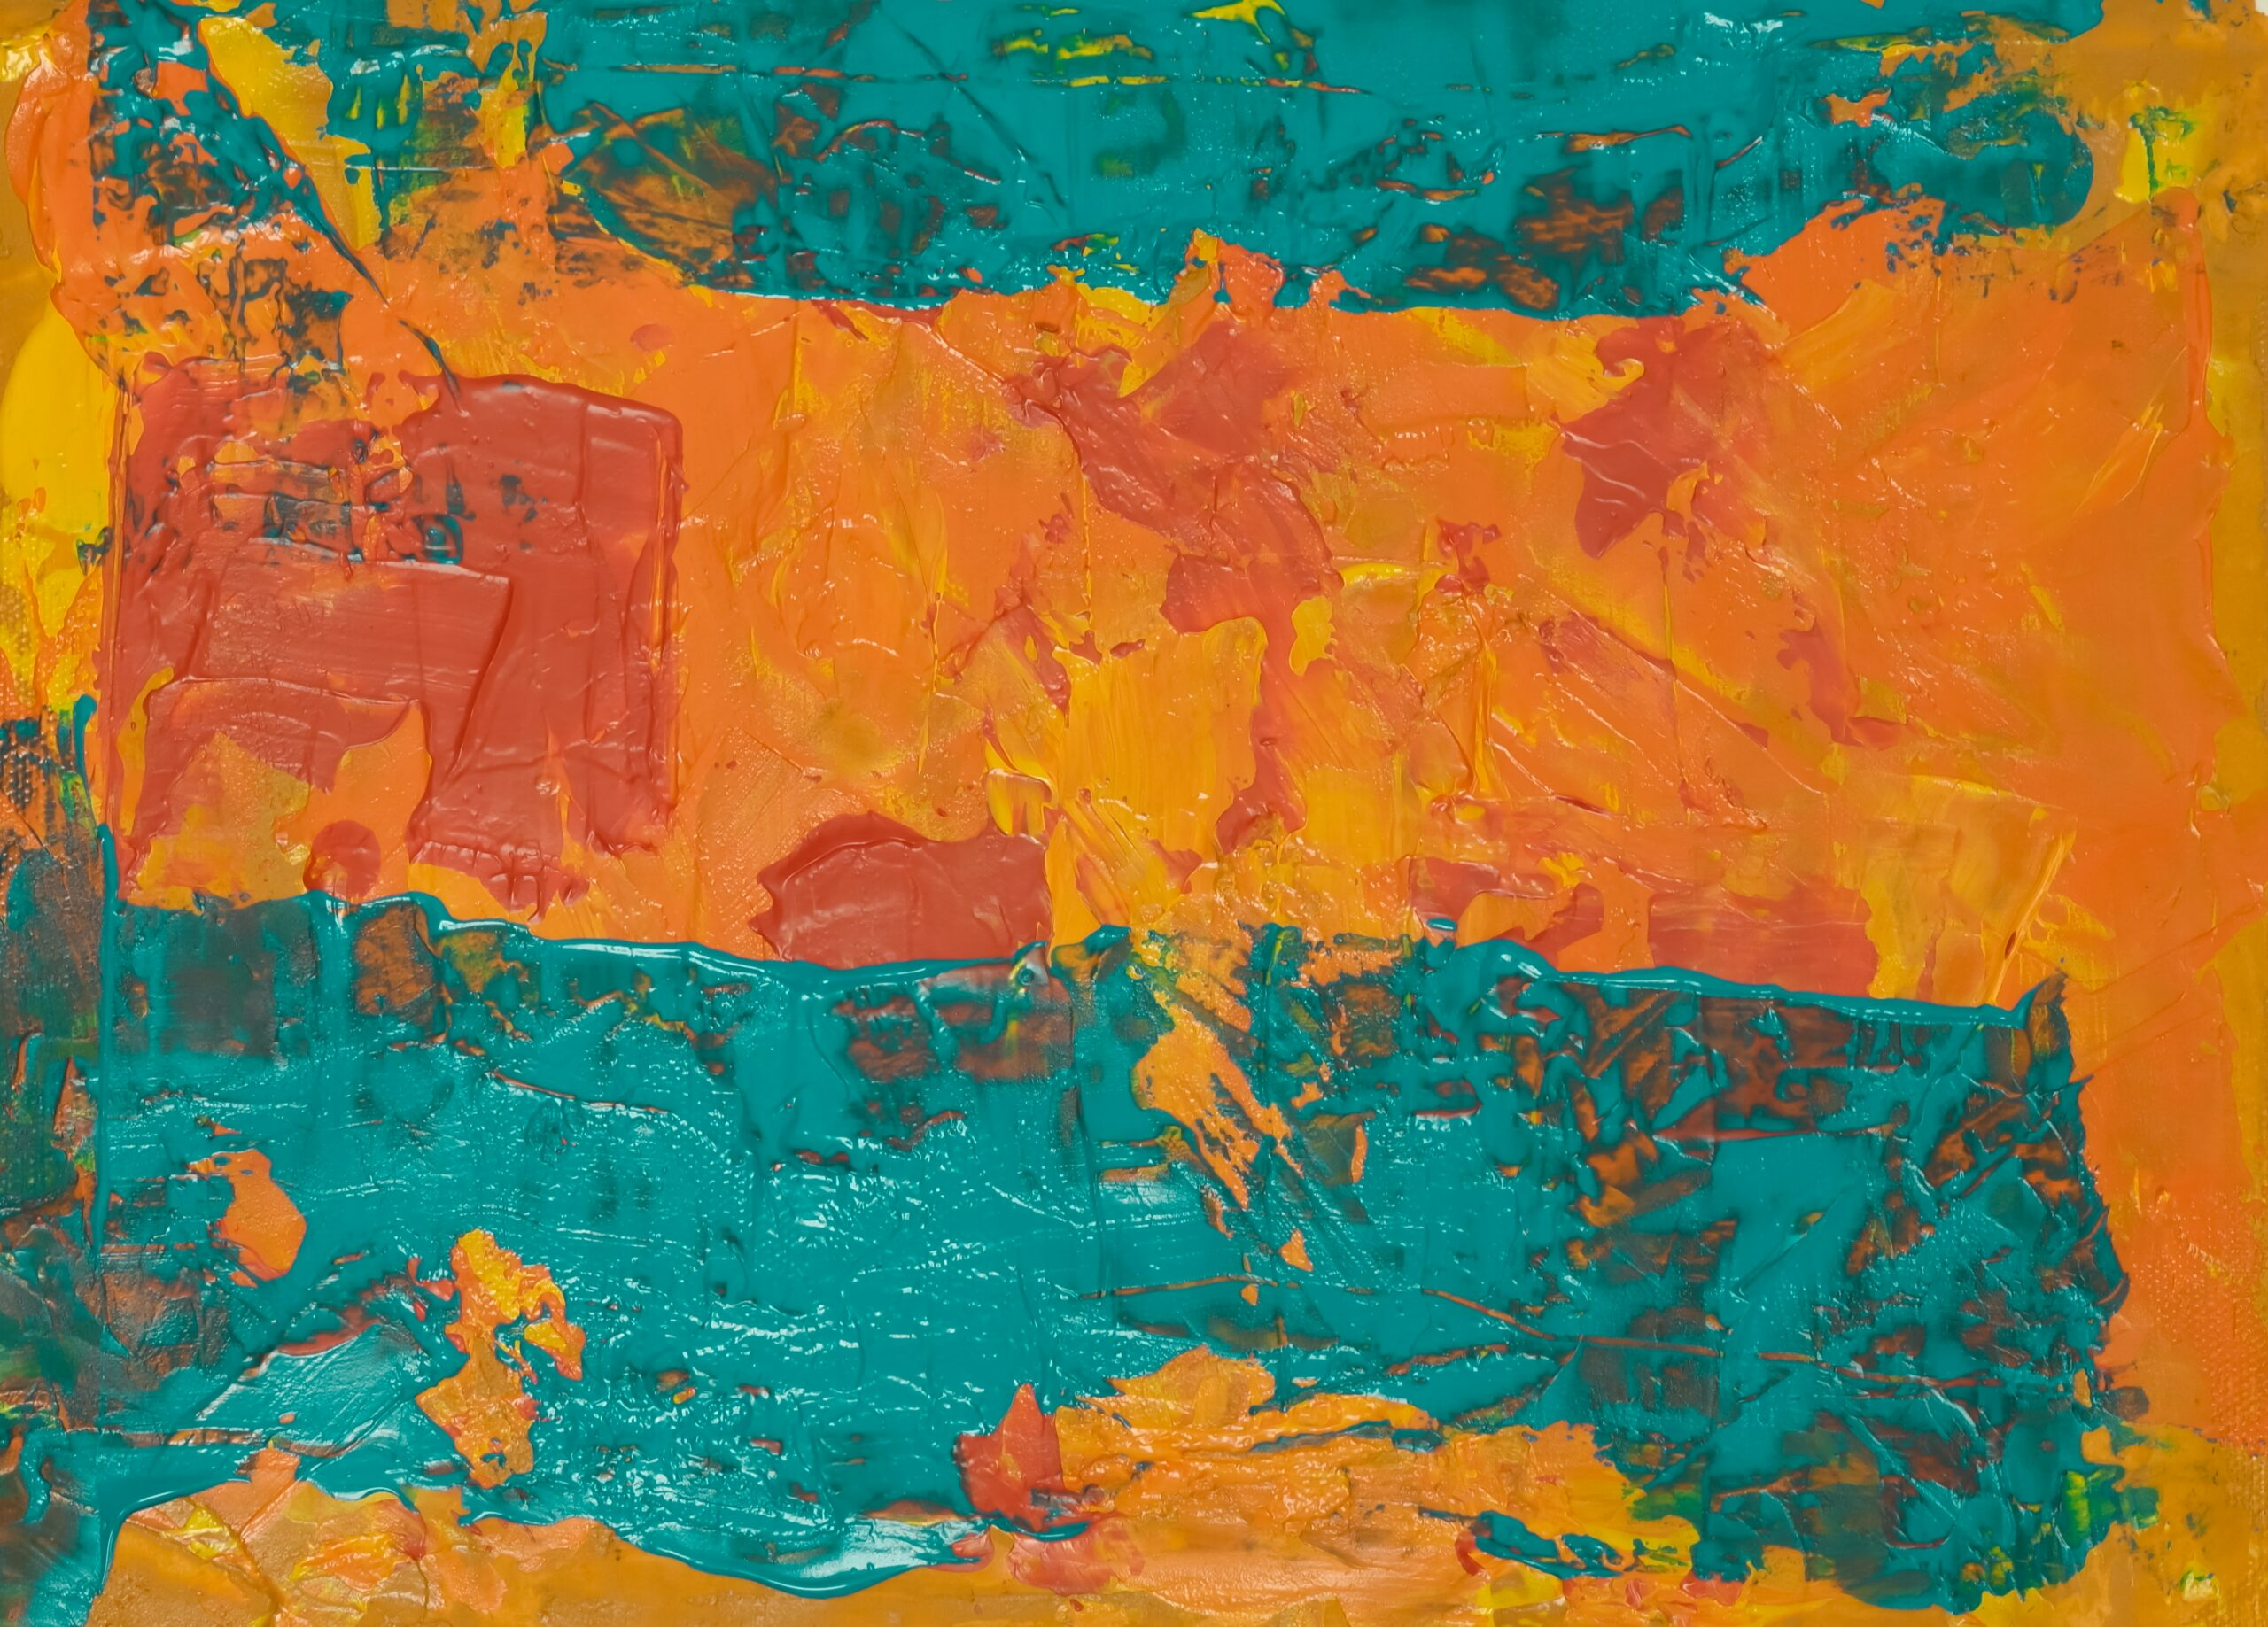 teal and red abstract painting